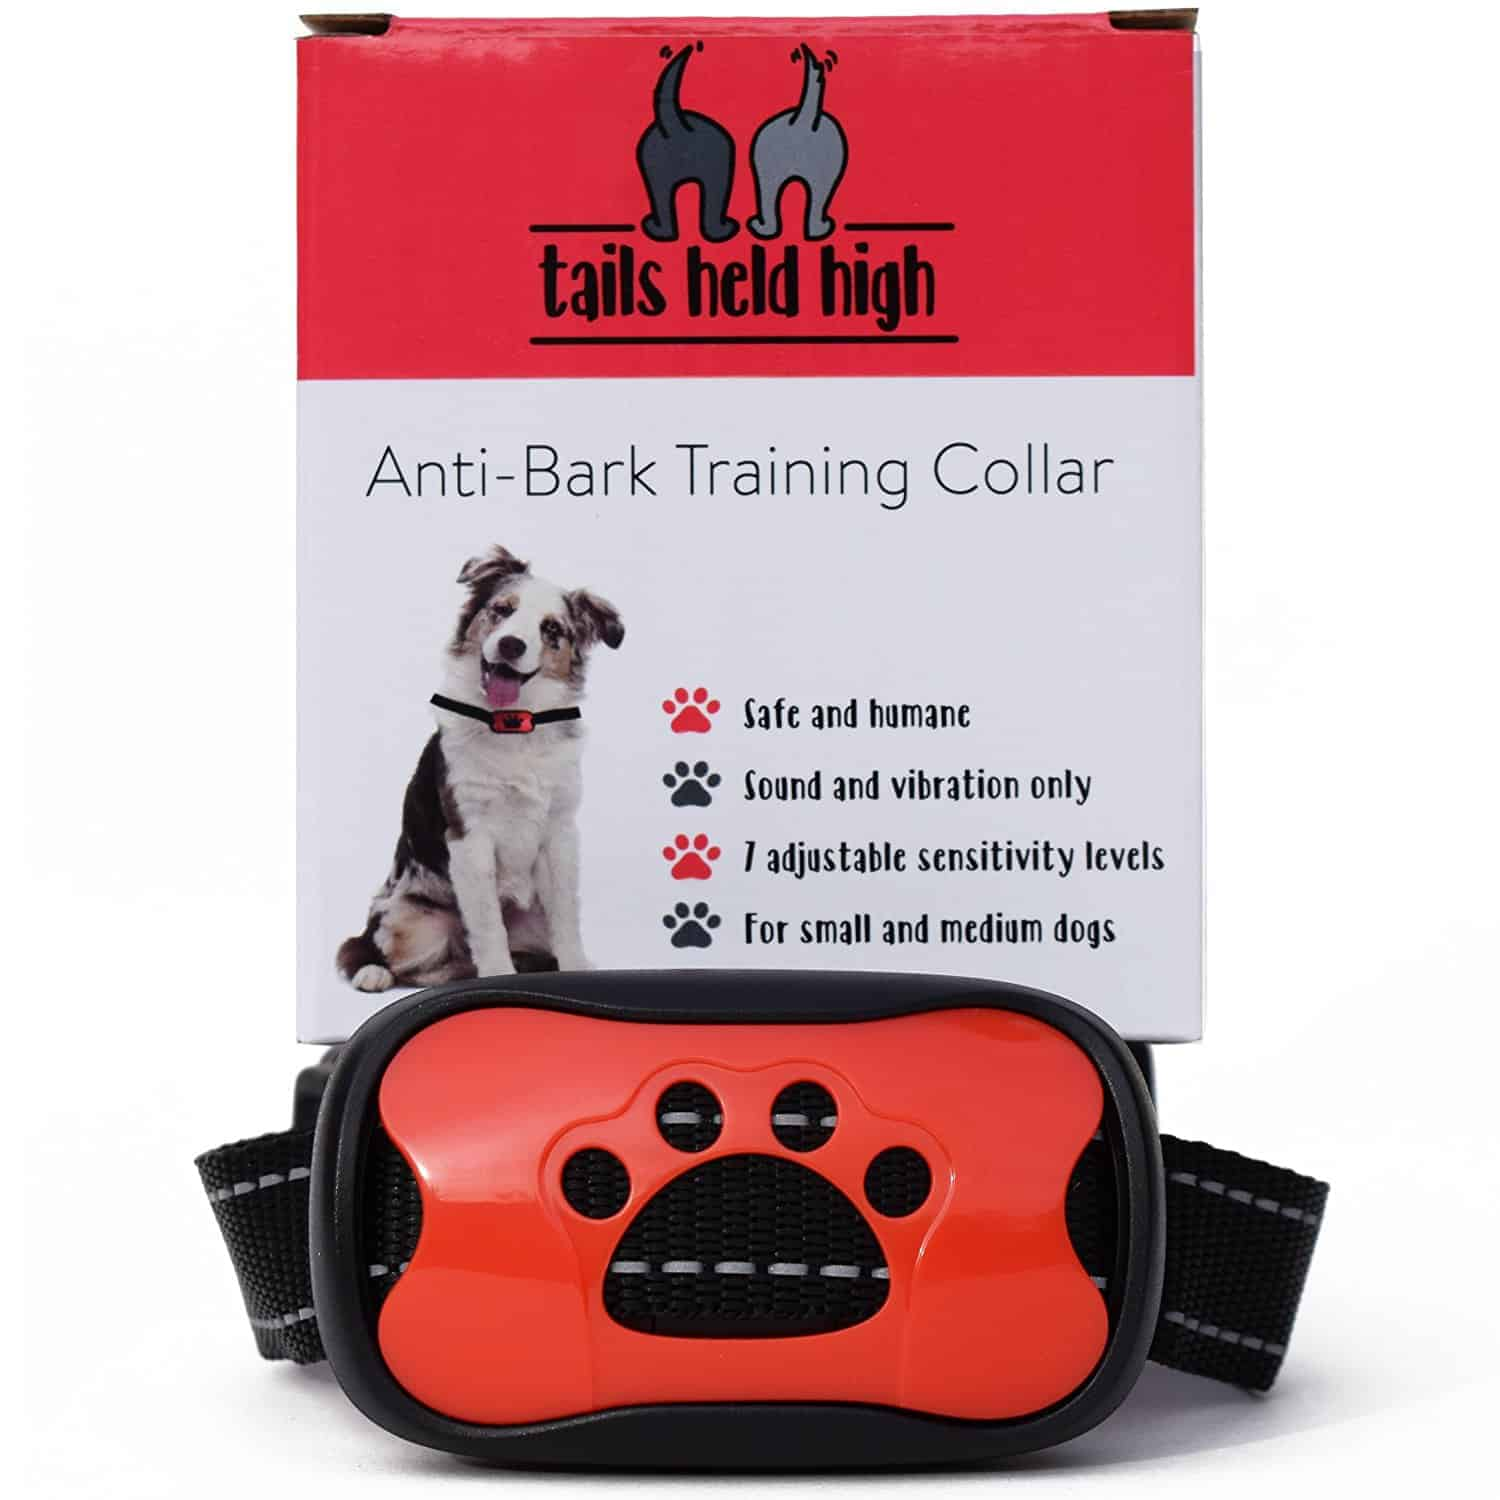 Best Humane Bark Collar – Tails Held High